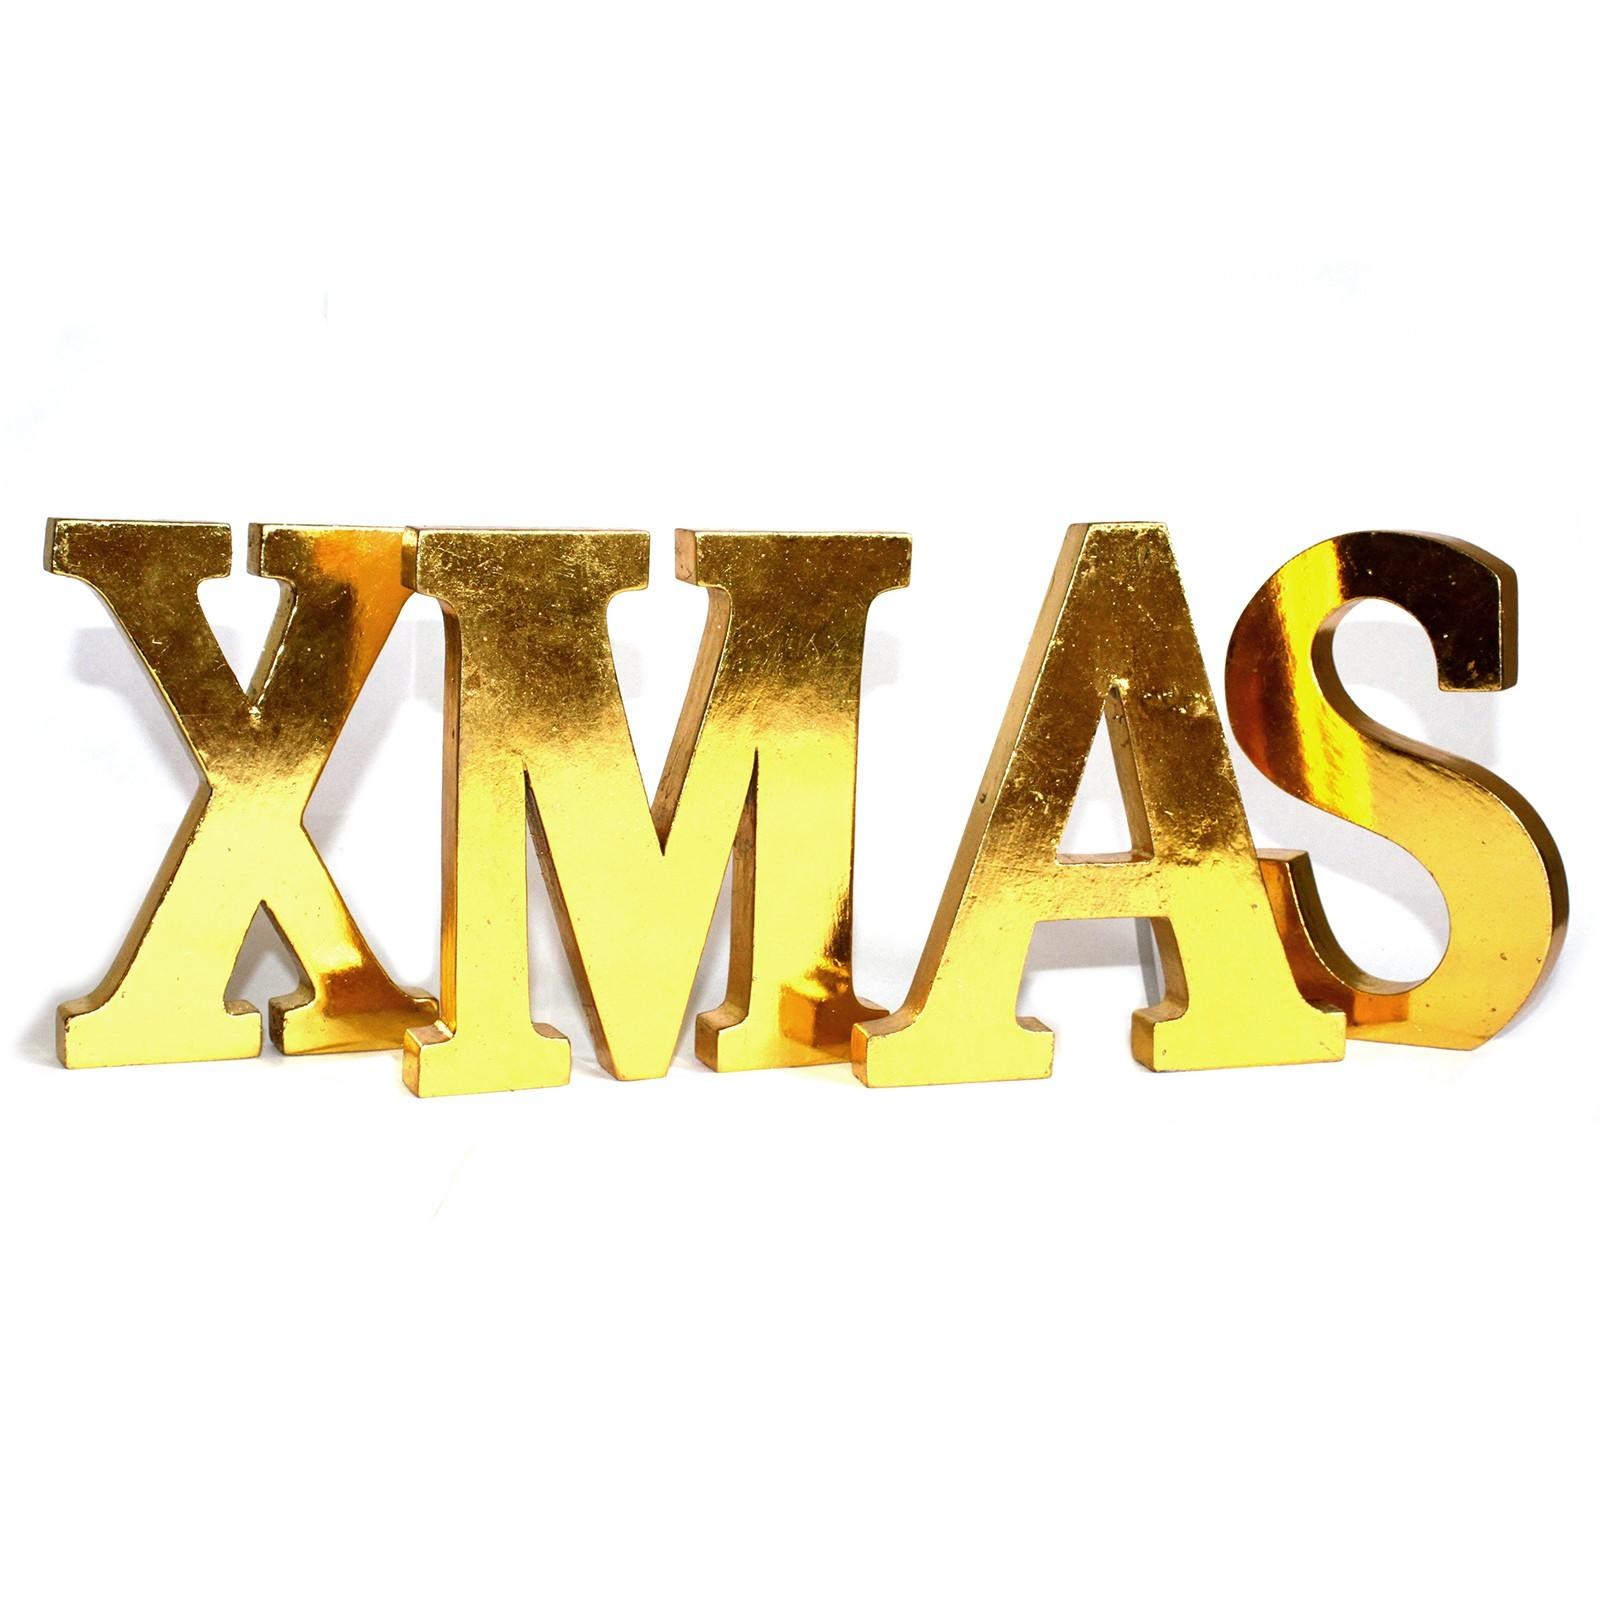 'XMAS' Ornamental Gold Letters